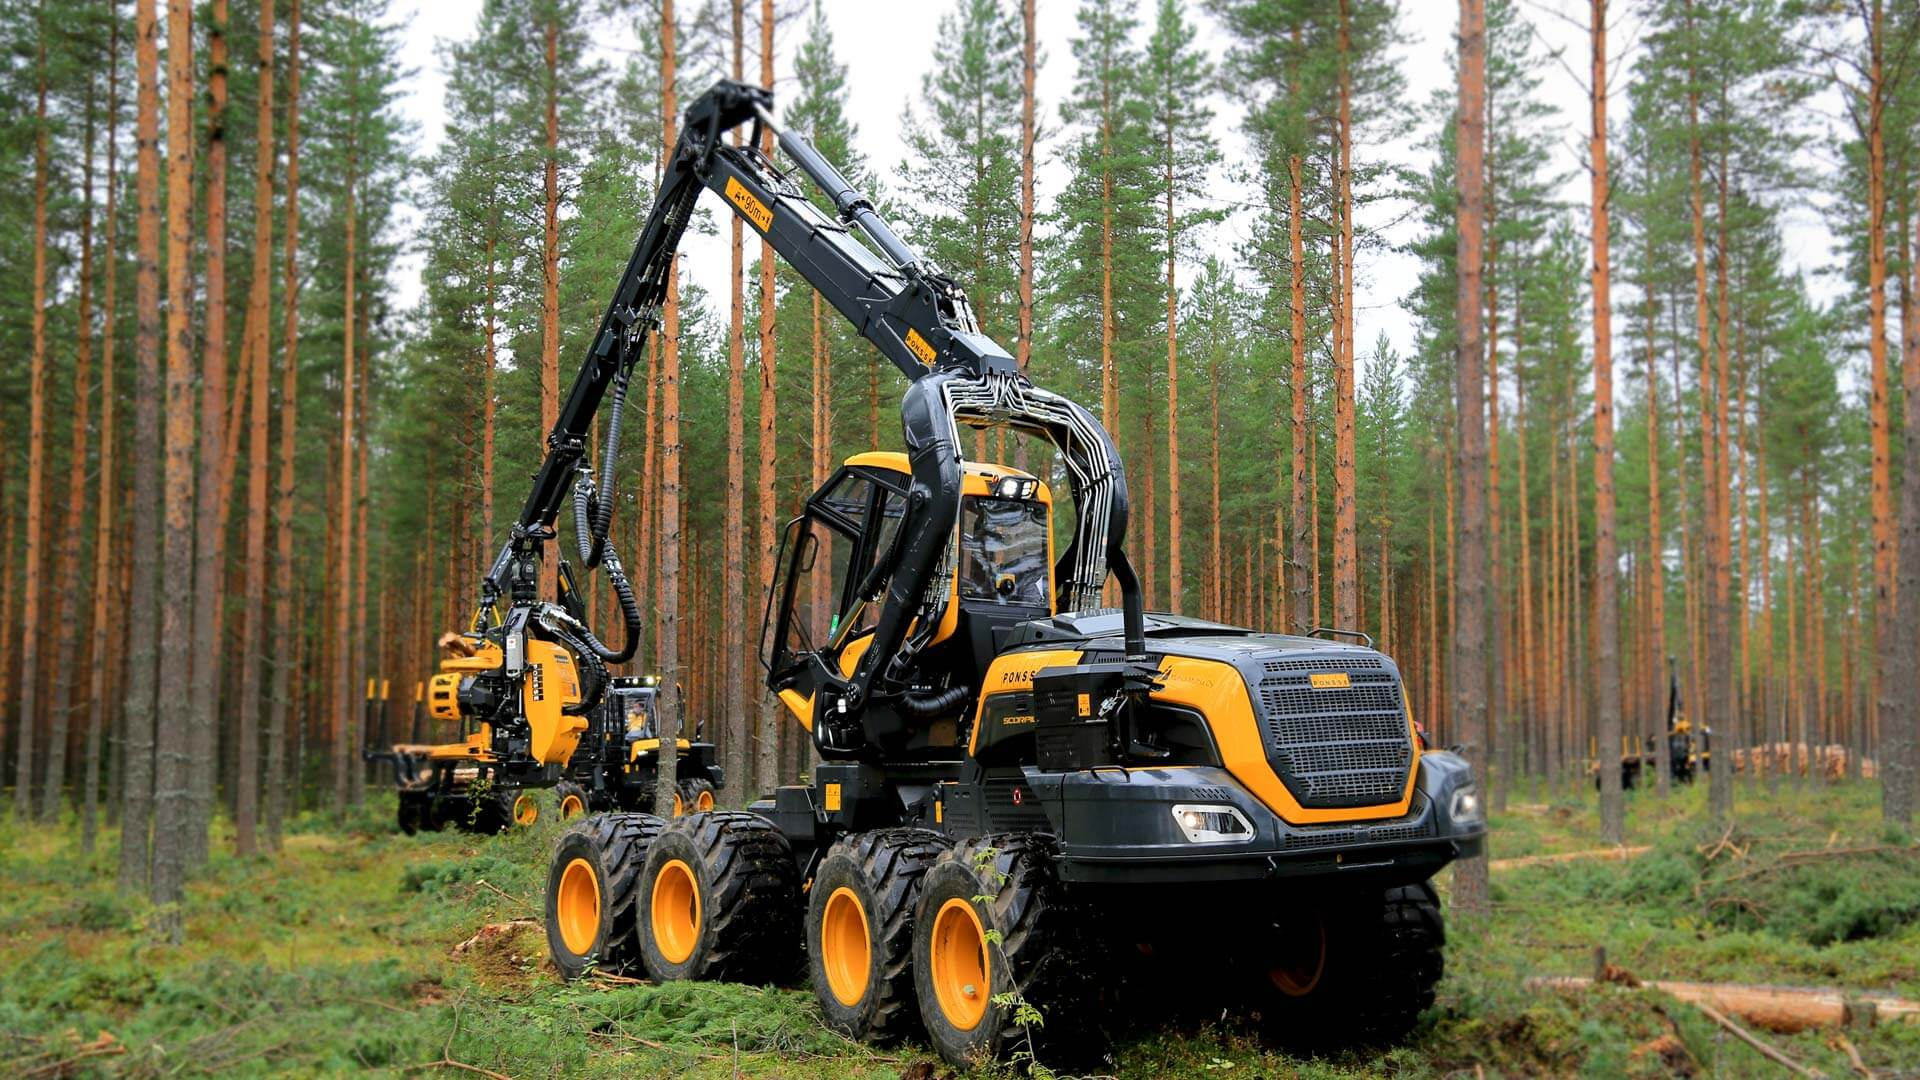 A Ponsse forestry machine at work in the woods